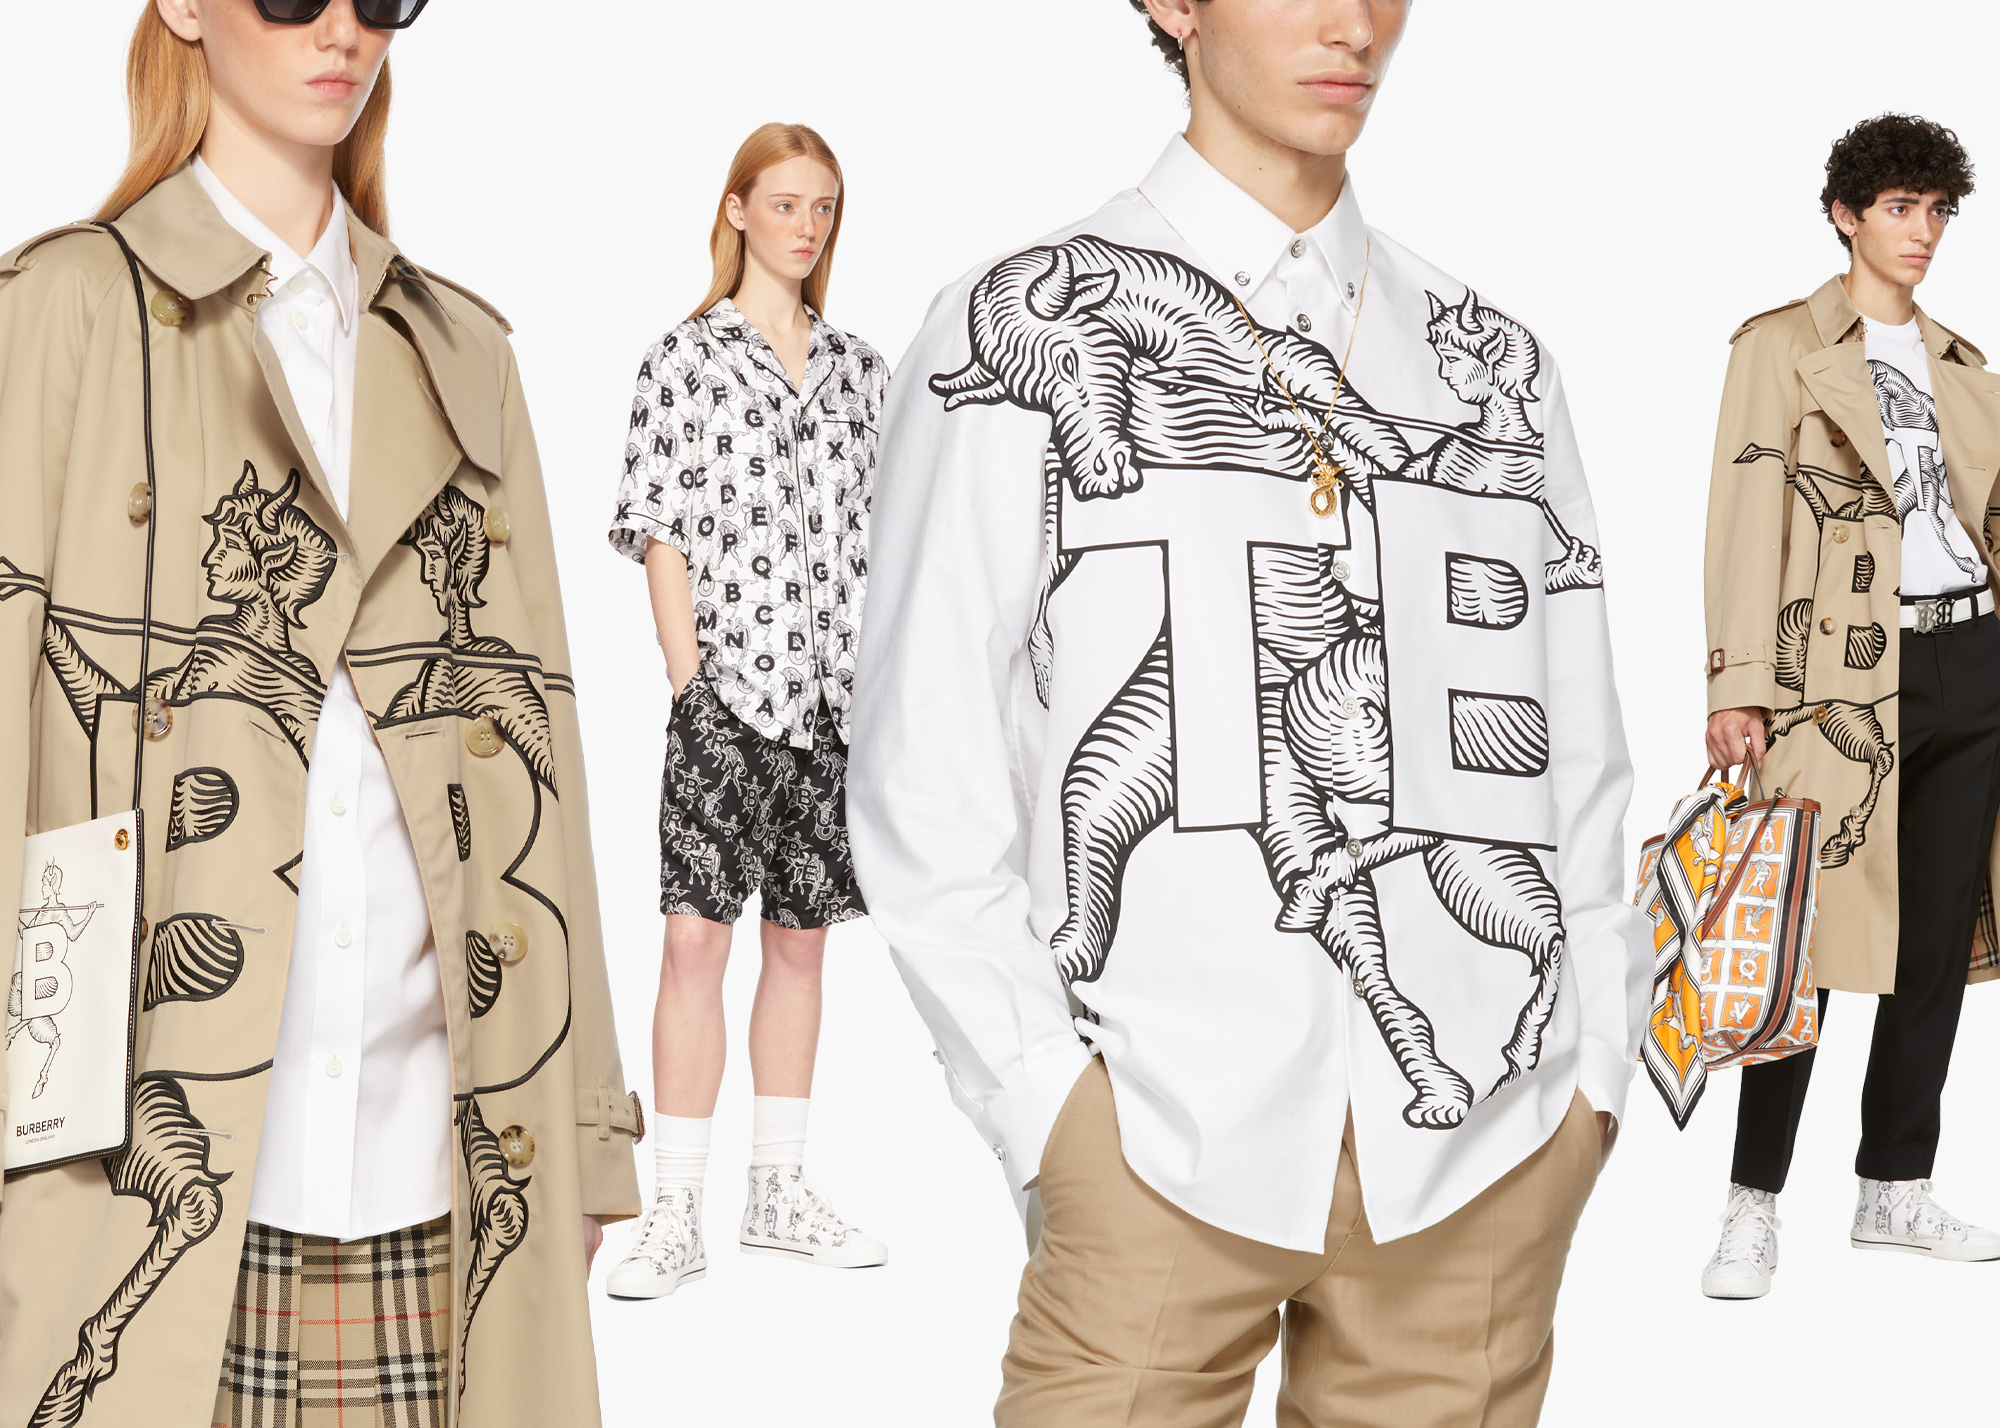 Some looks from Burberry's Mythical Alphabet capsule collection.